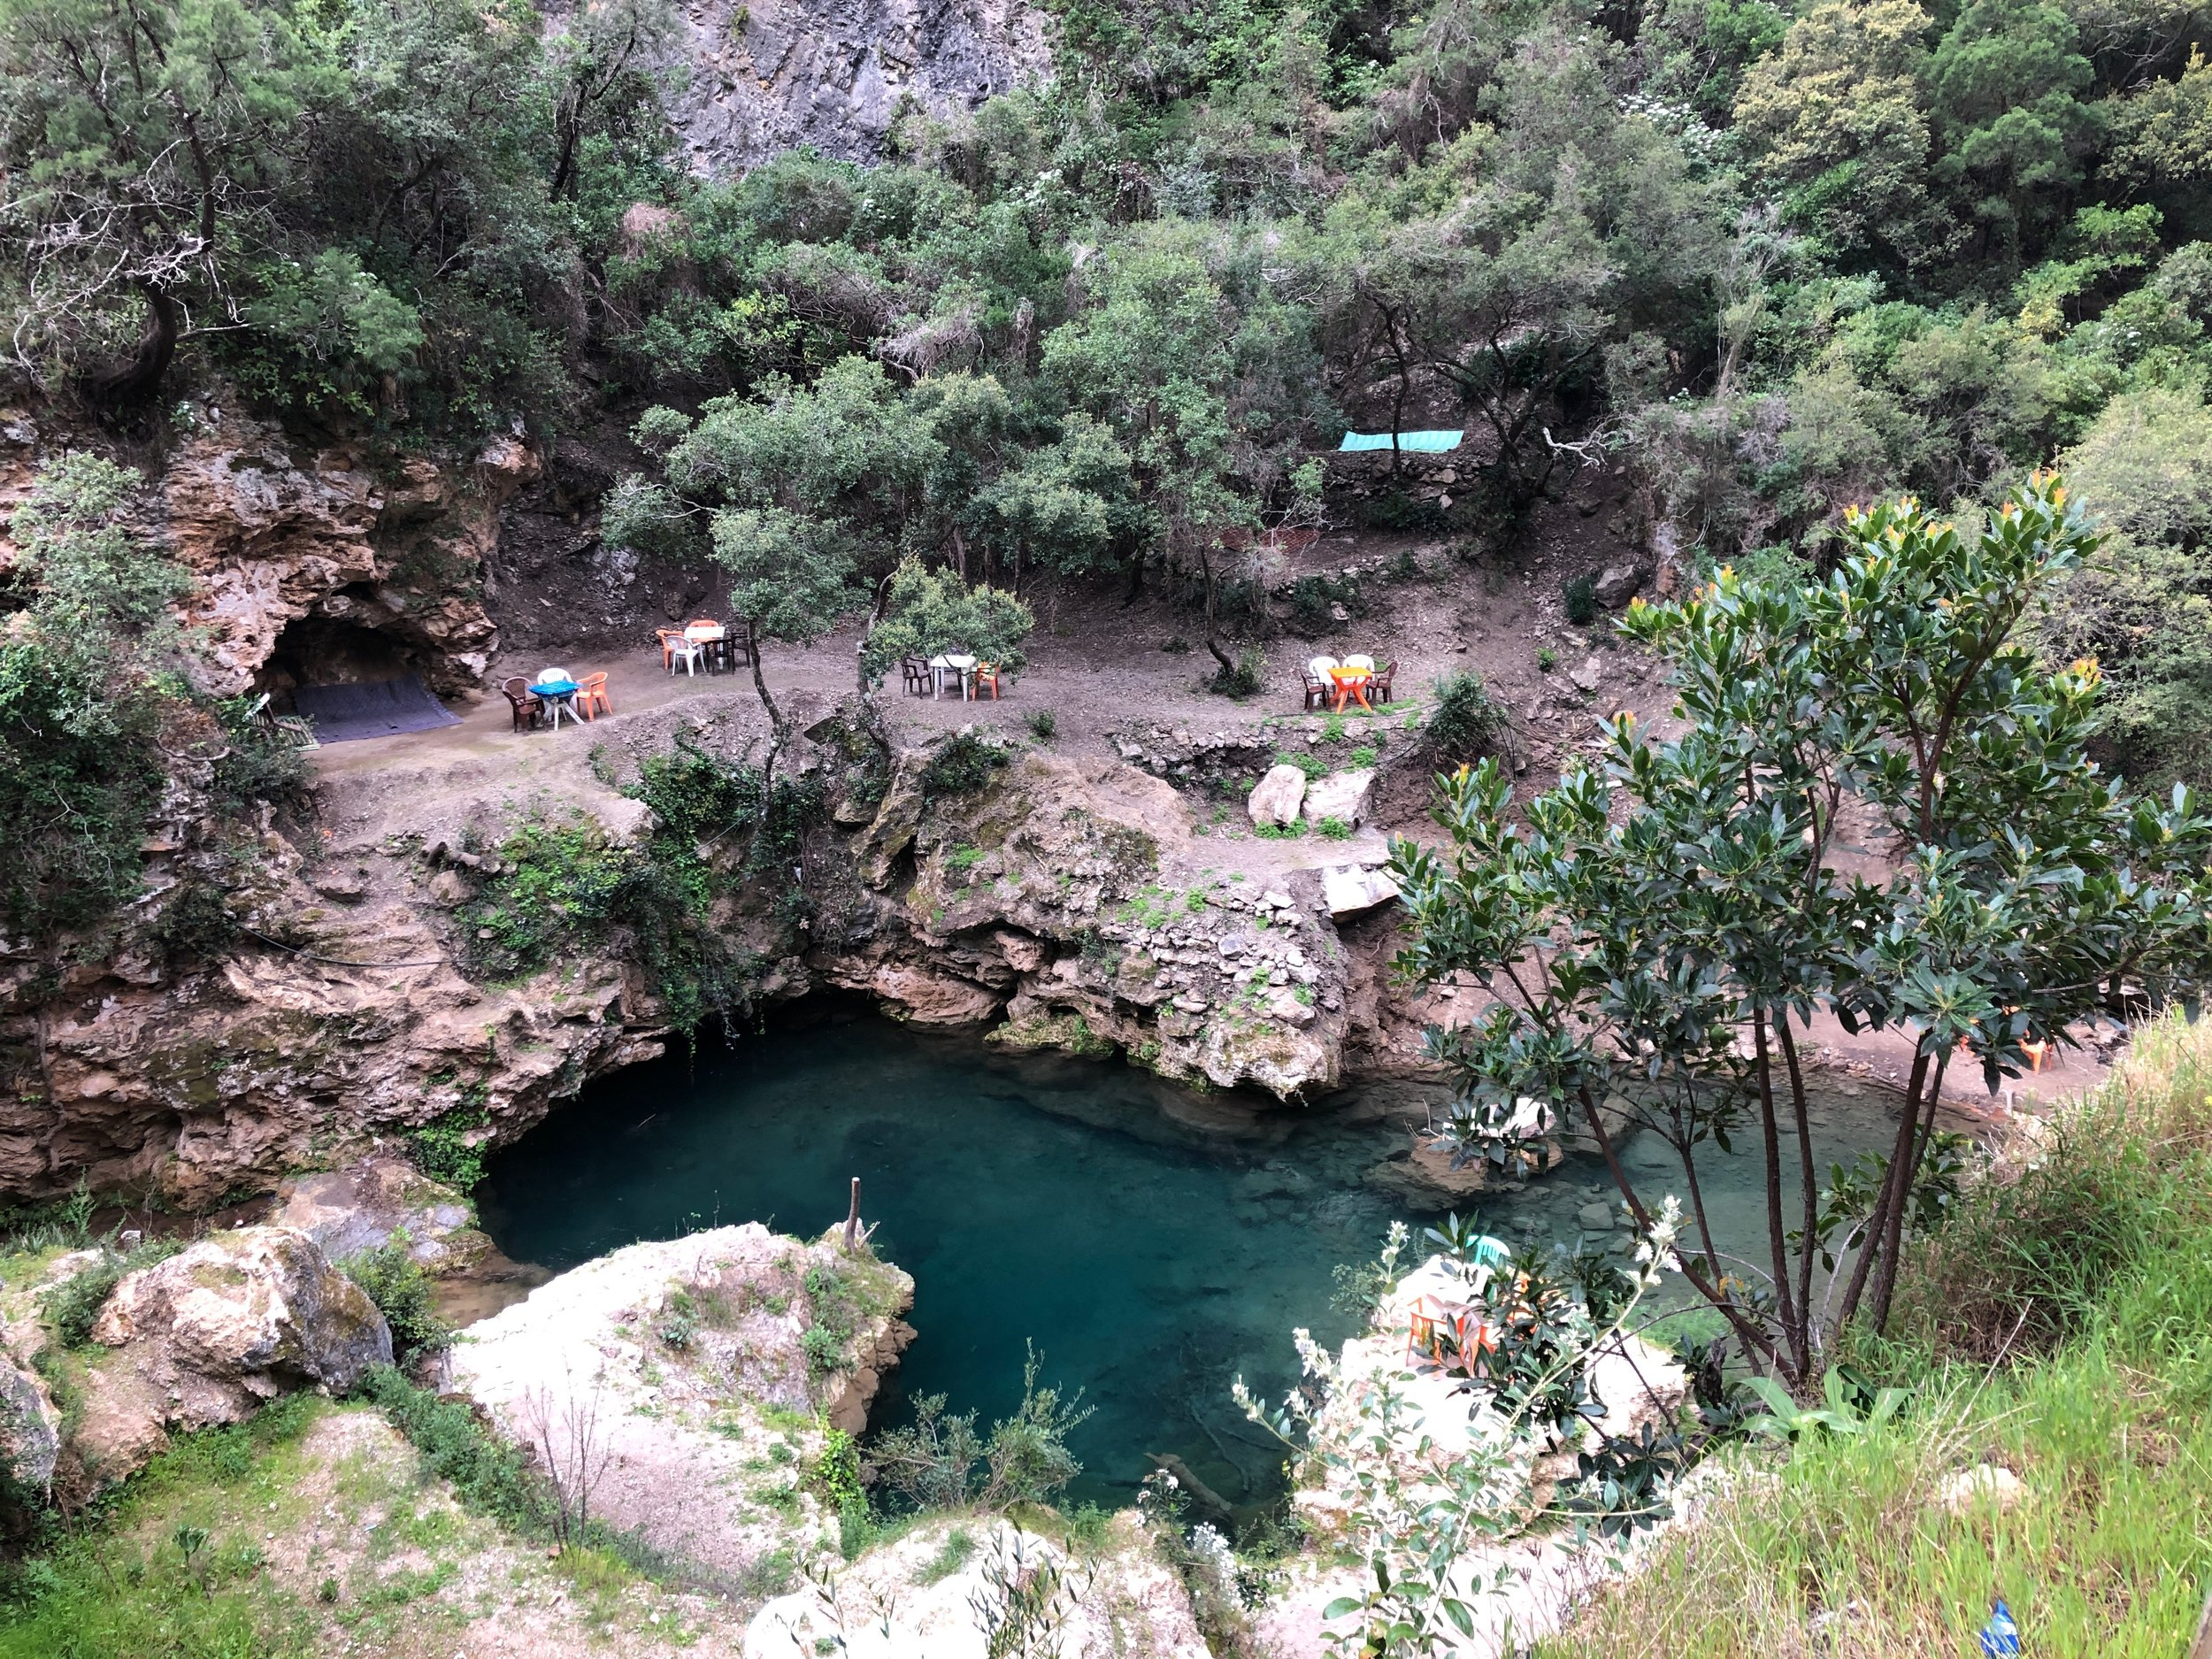 There were several swimming holes along the way - had the weather been better it would have been fun to take a dip!